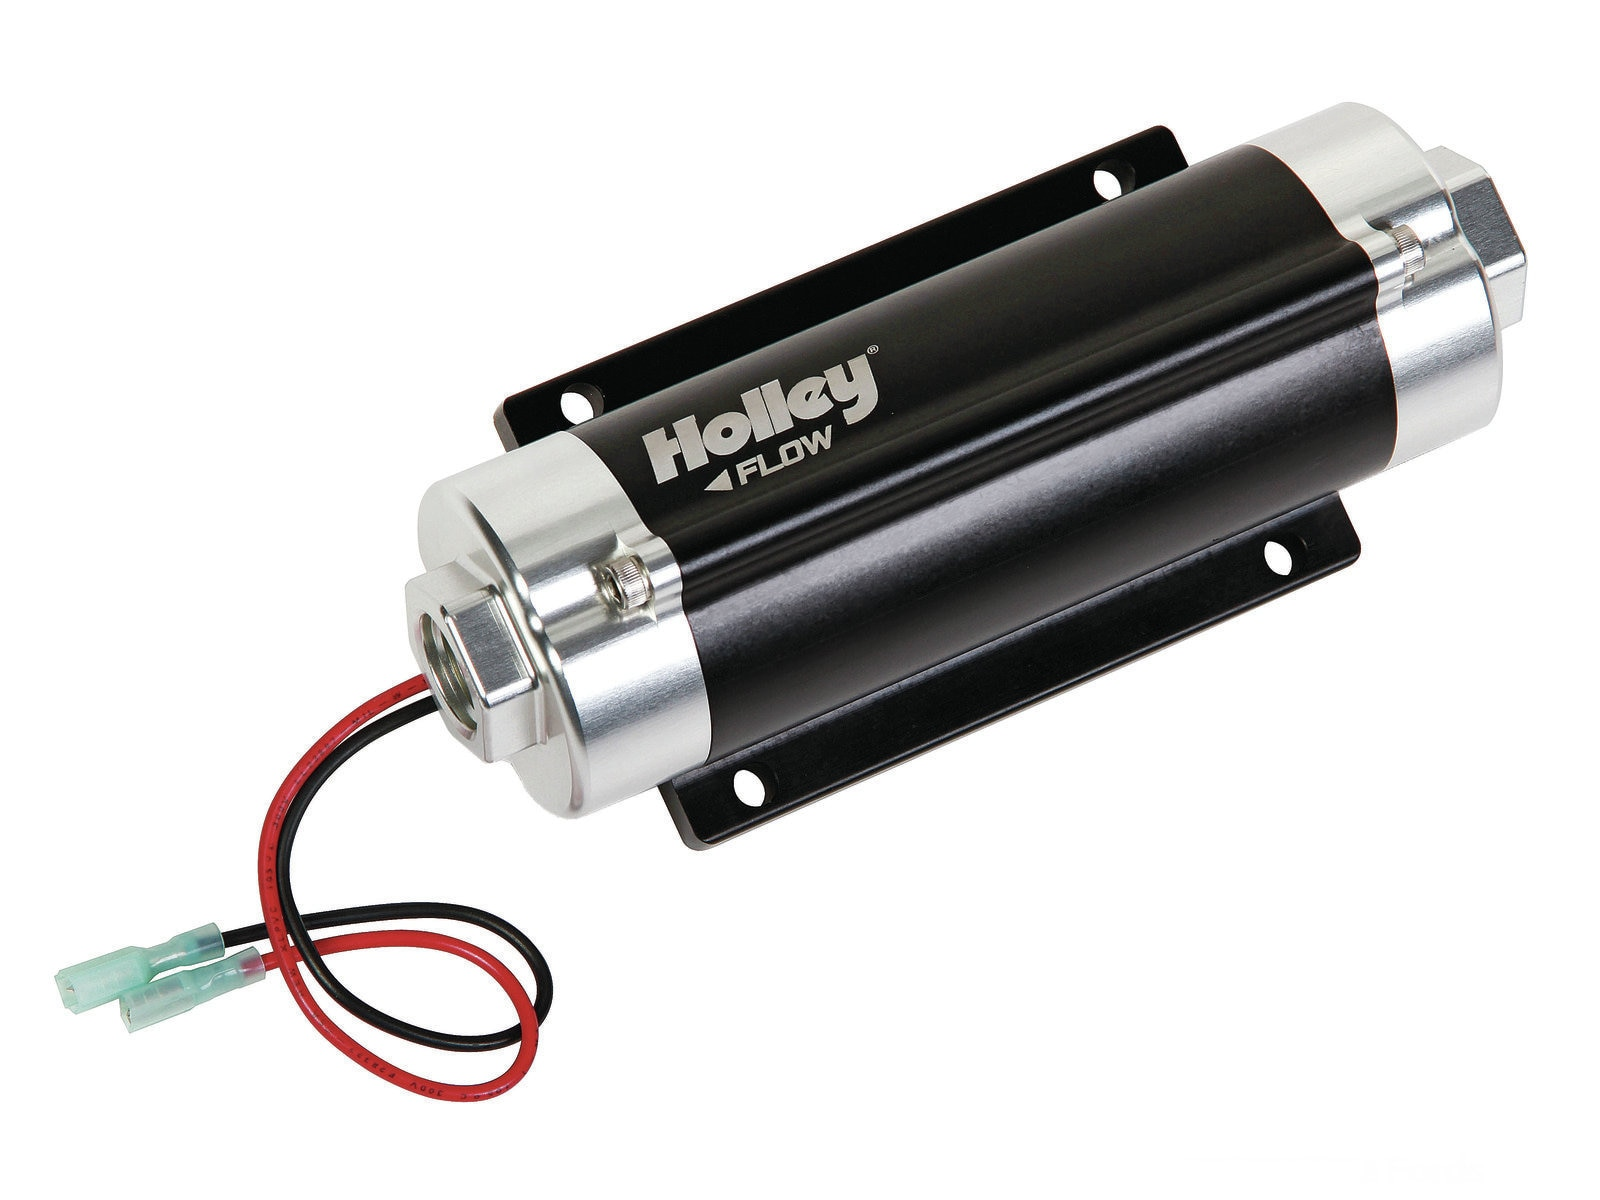 Mdmp 1110 Mmf Tech Supercharger Systems And Upgrades Pressurized Power 016